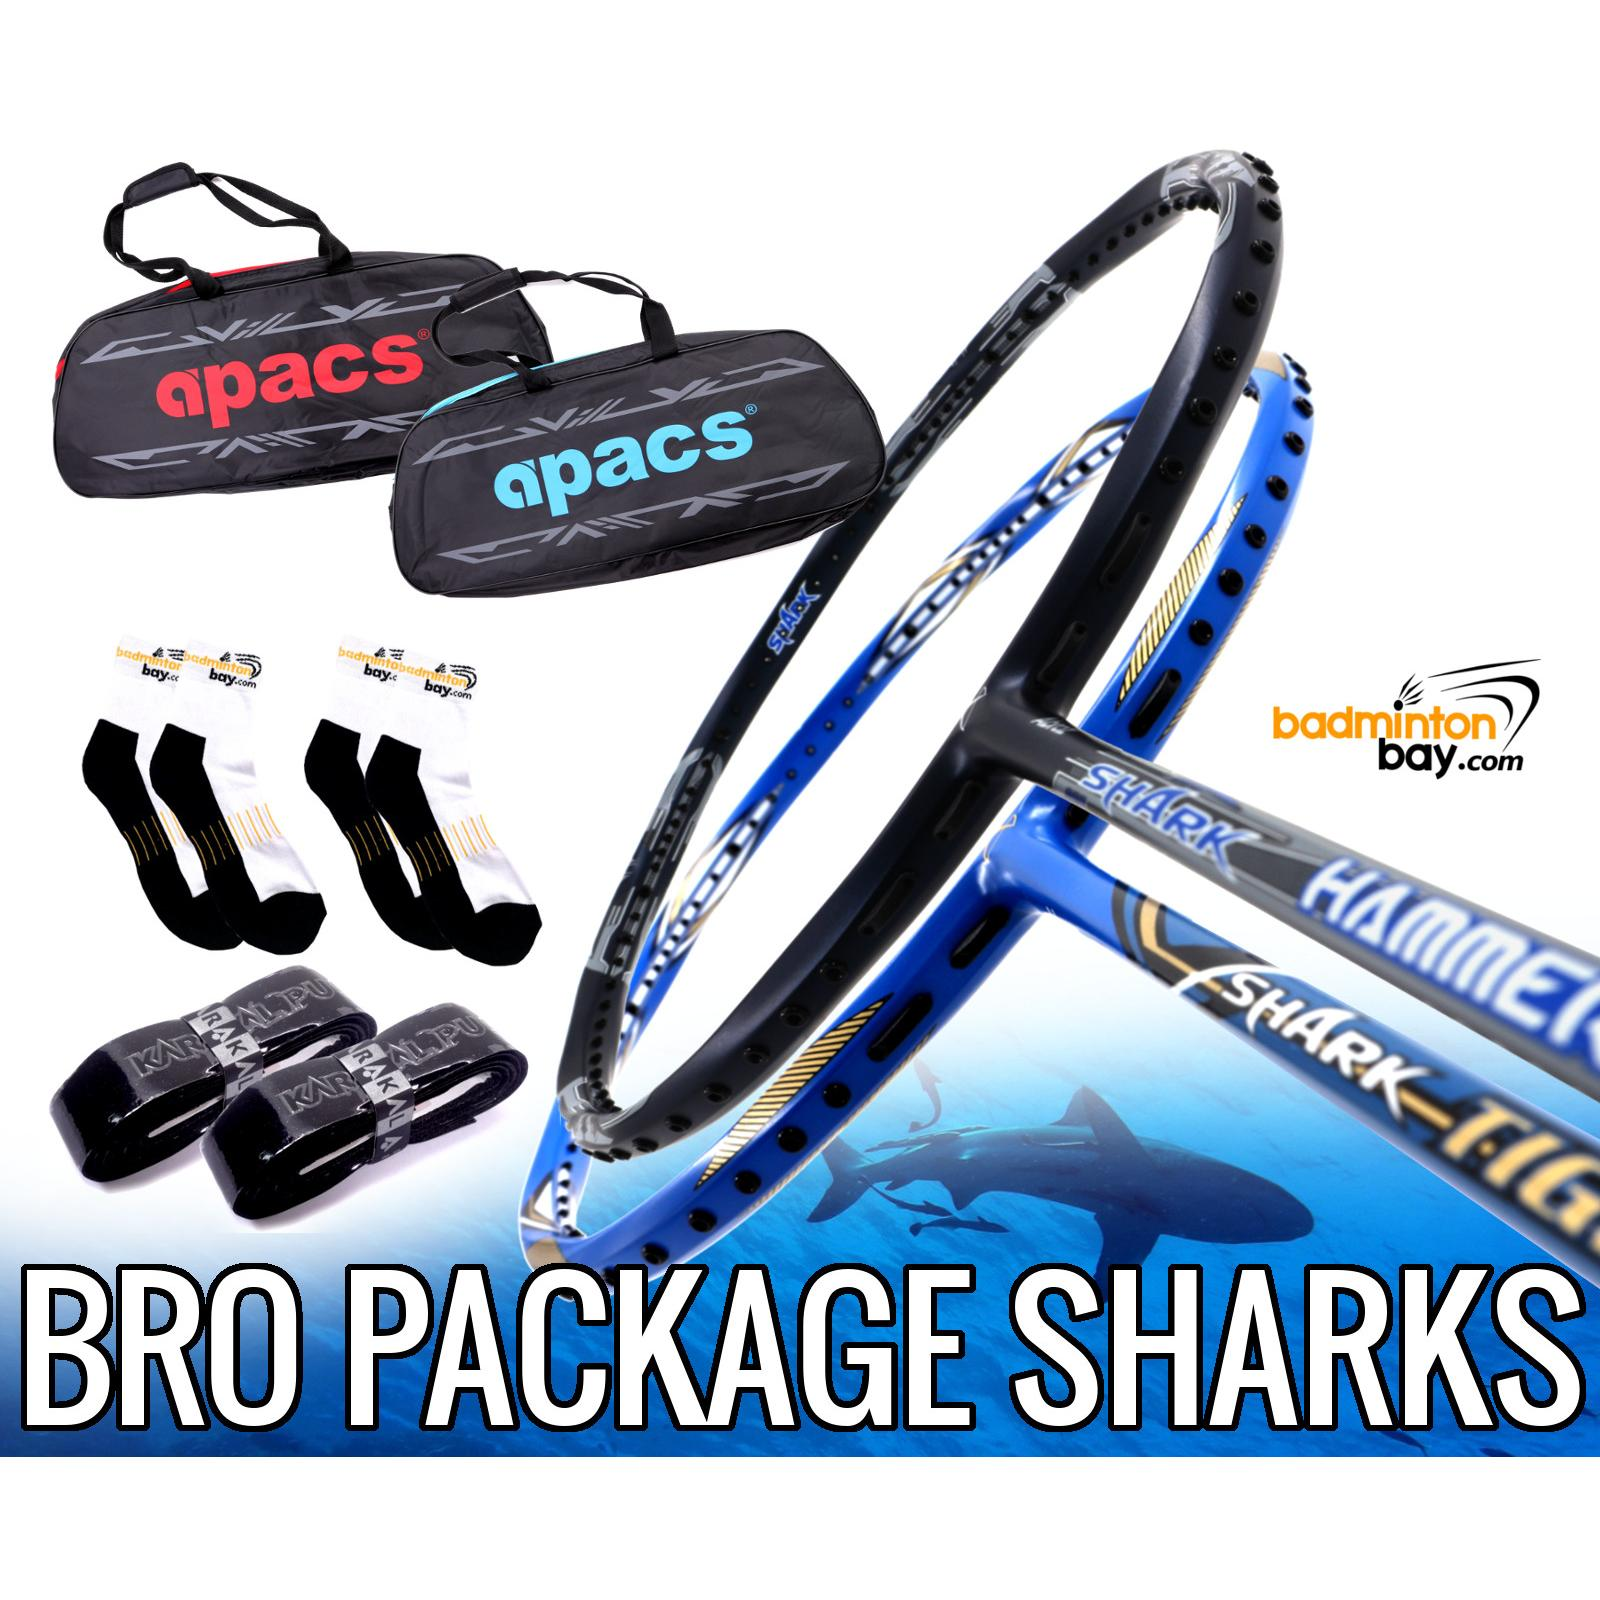 Bro Package SHARKS: Abroz Shark Tiger + Abroz Shark Hammerhead Badminton  Racket + 2 pcs Karakal Grips + 2 Single Bags + 2 pairs socks.